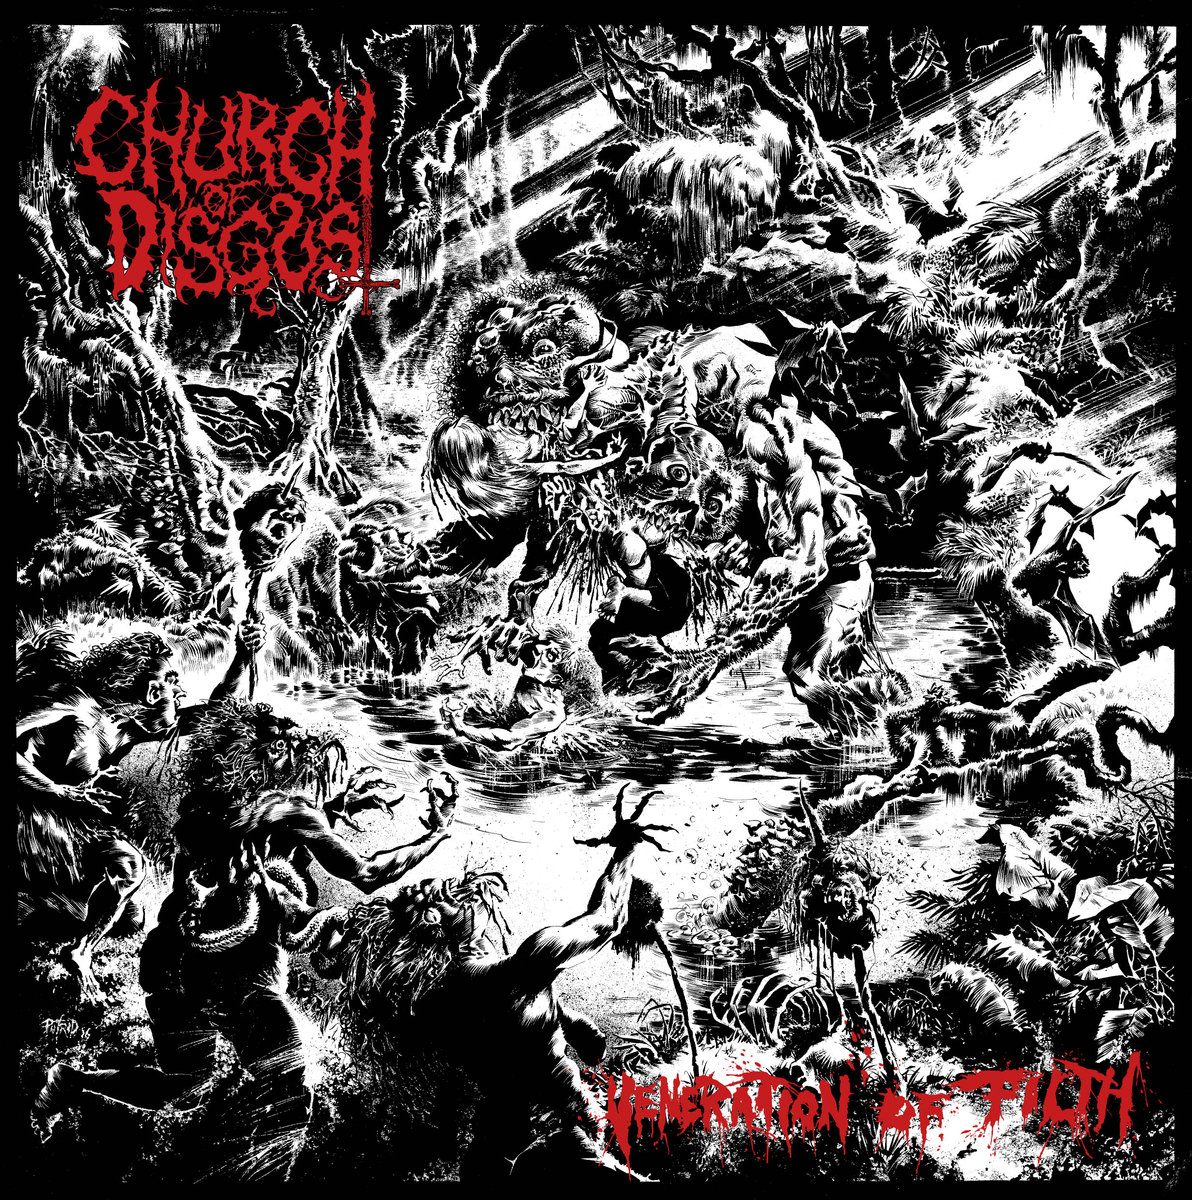 church-of-disgust